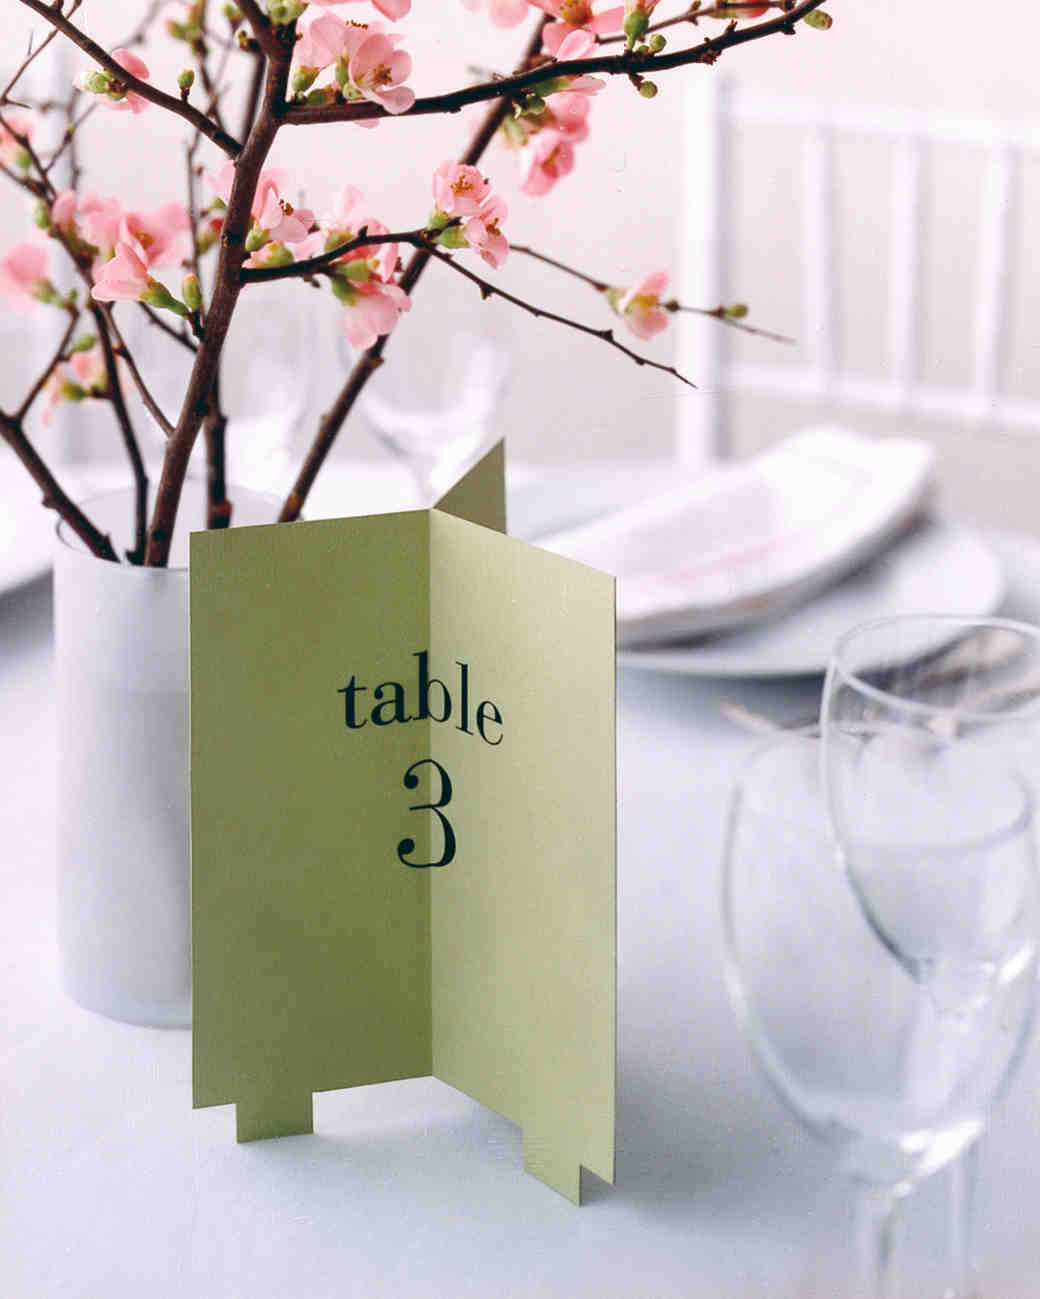 diy-table-numbers-trifold-table-card-su02-0715.jpg